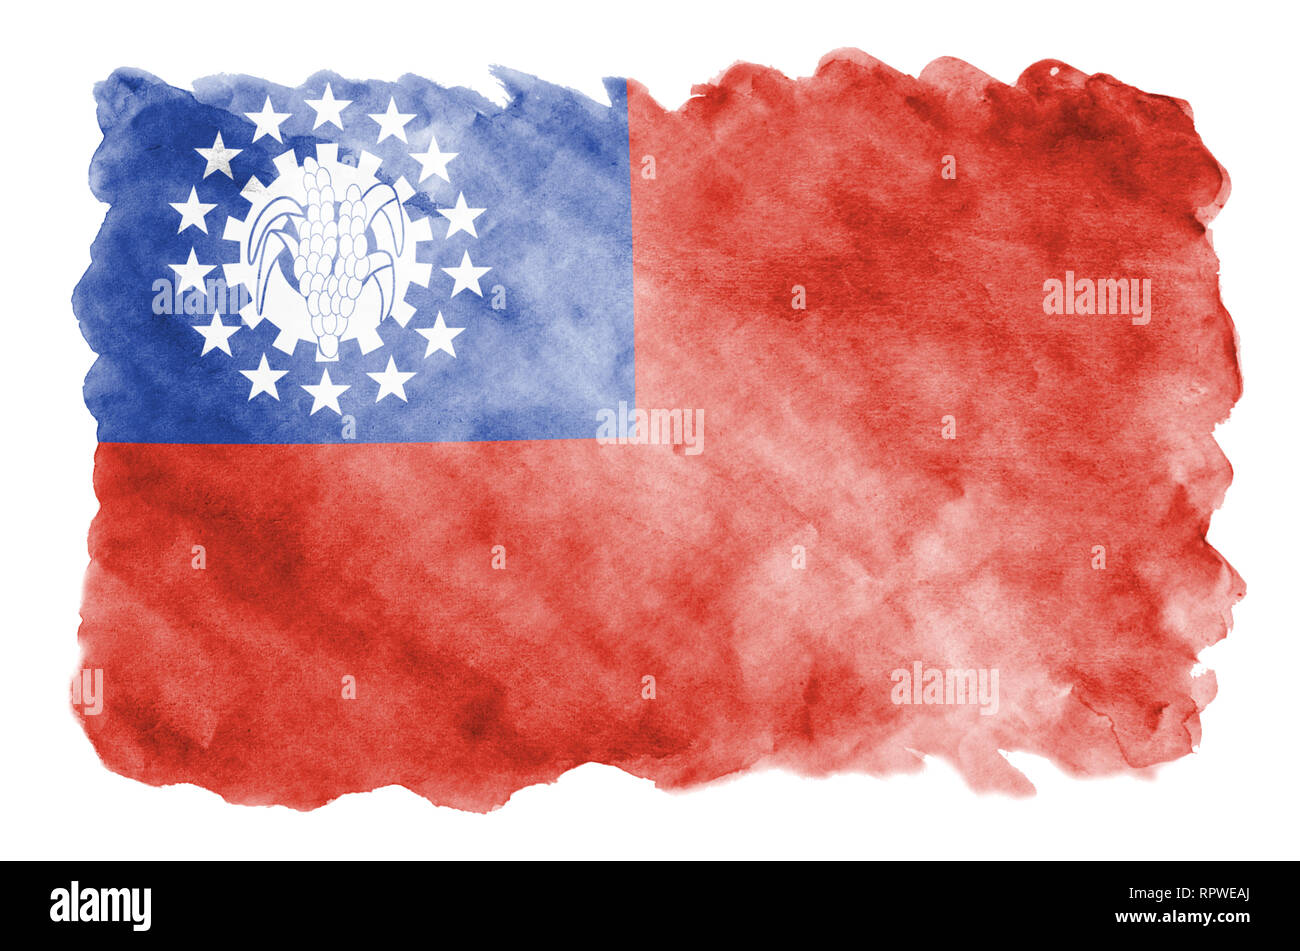 Myanmar flag  is depicted in liquid watercolor style isolated on white background. Careless paint shading with image of national flag. Independence Da - Stock Image